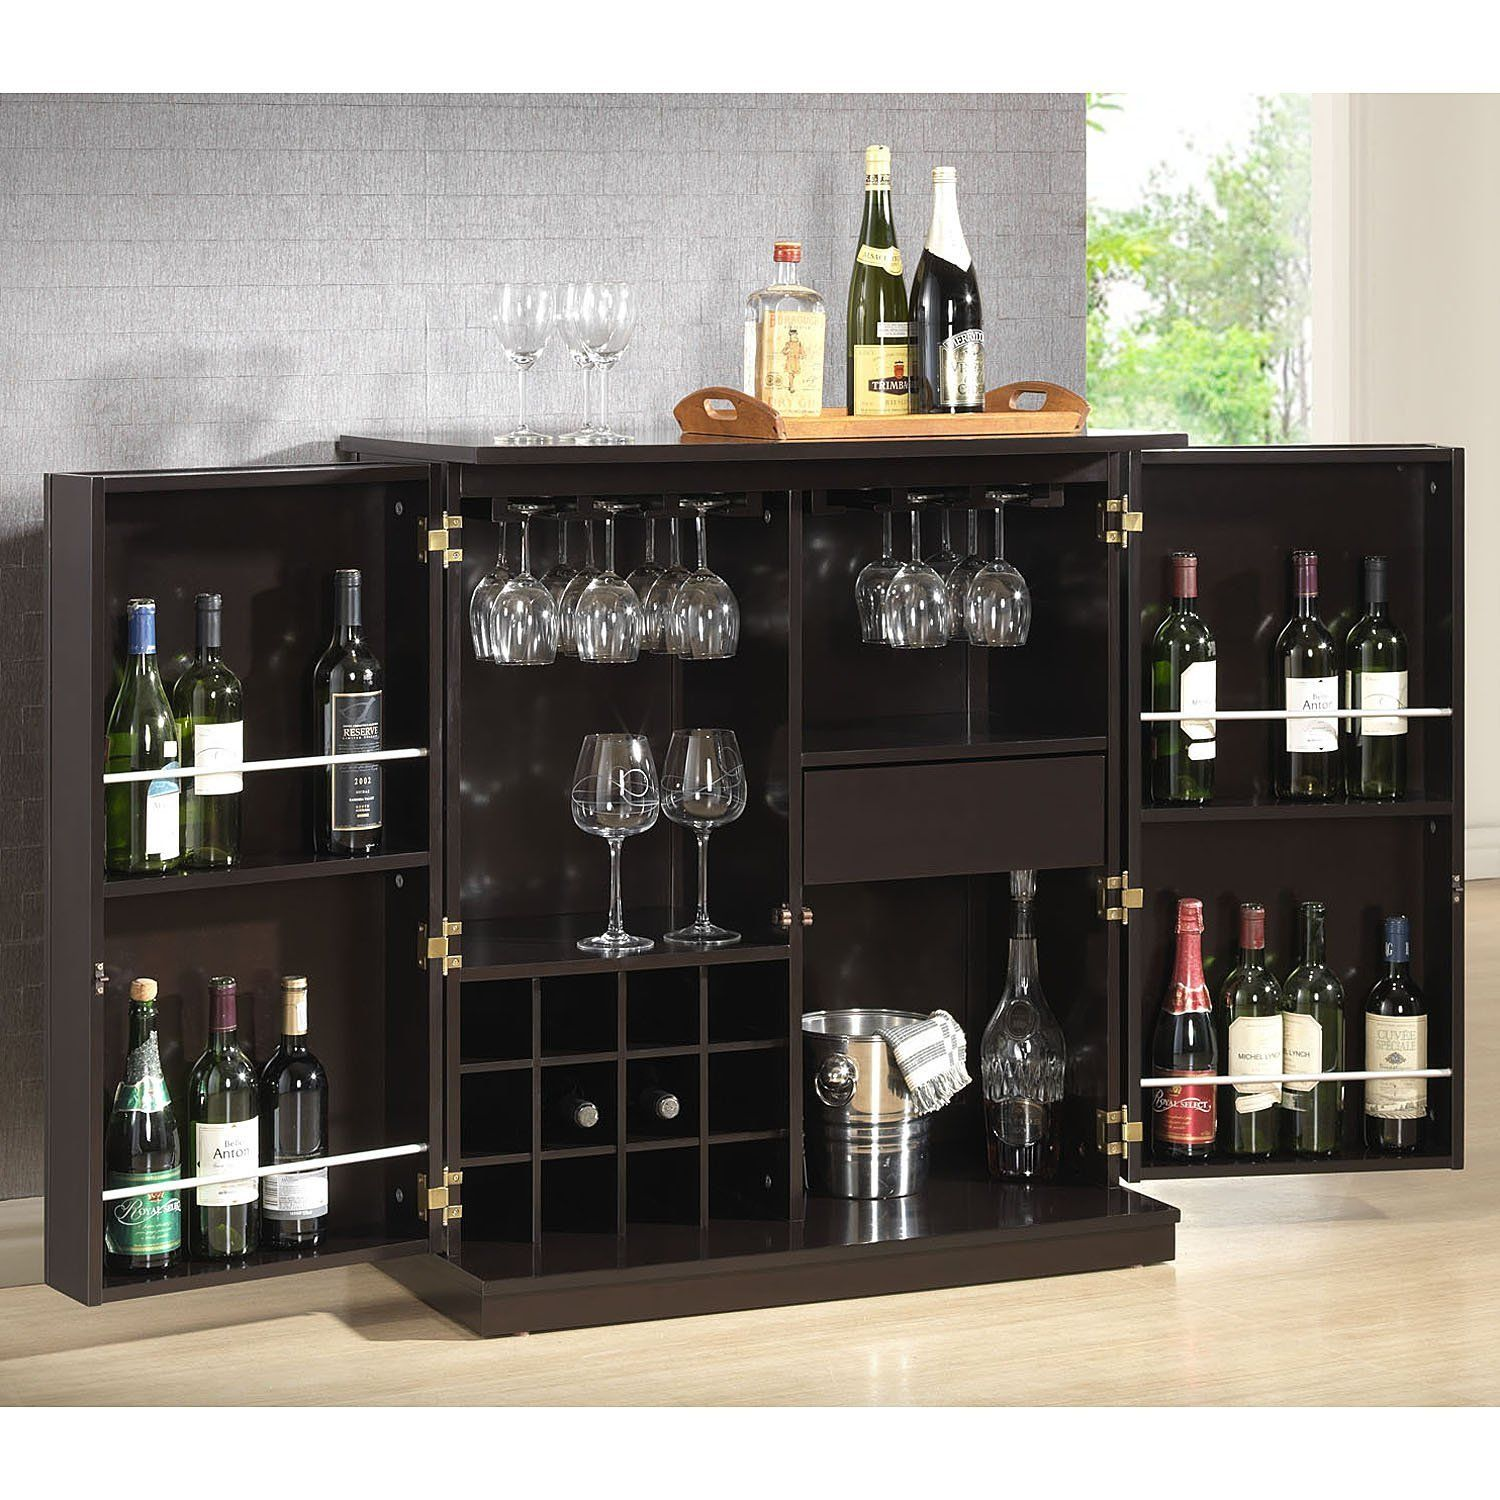 home mini bar furniture. Furniture: Cabinet Excellent Mini Bar With White Wall Design And Small Glass Windows For Home Furniture